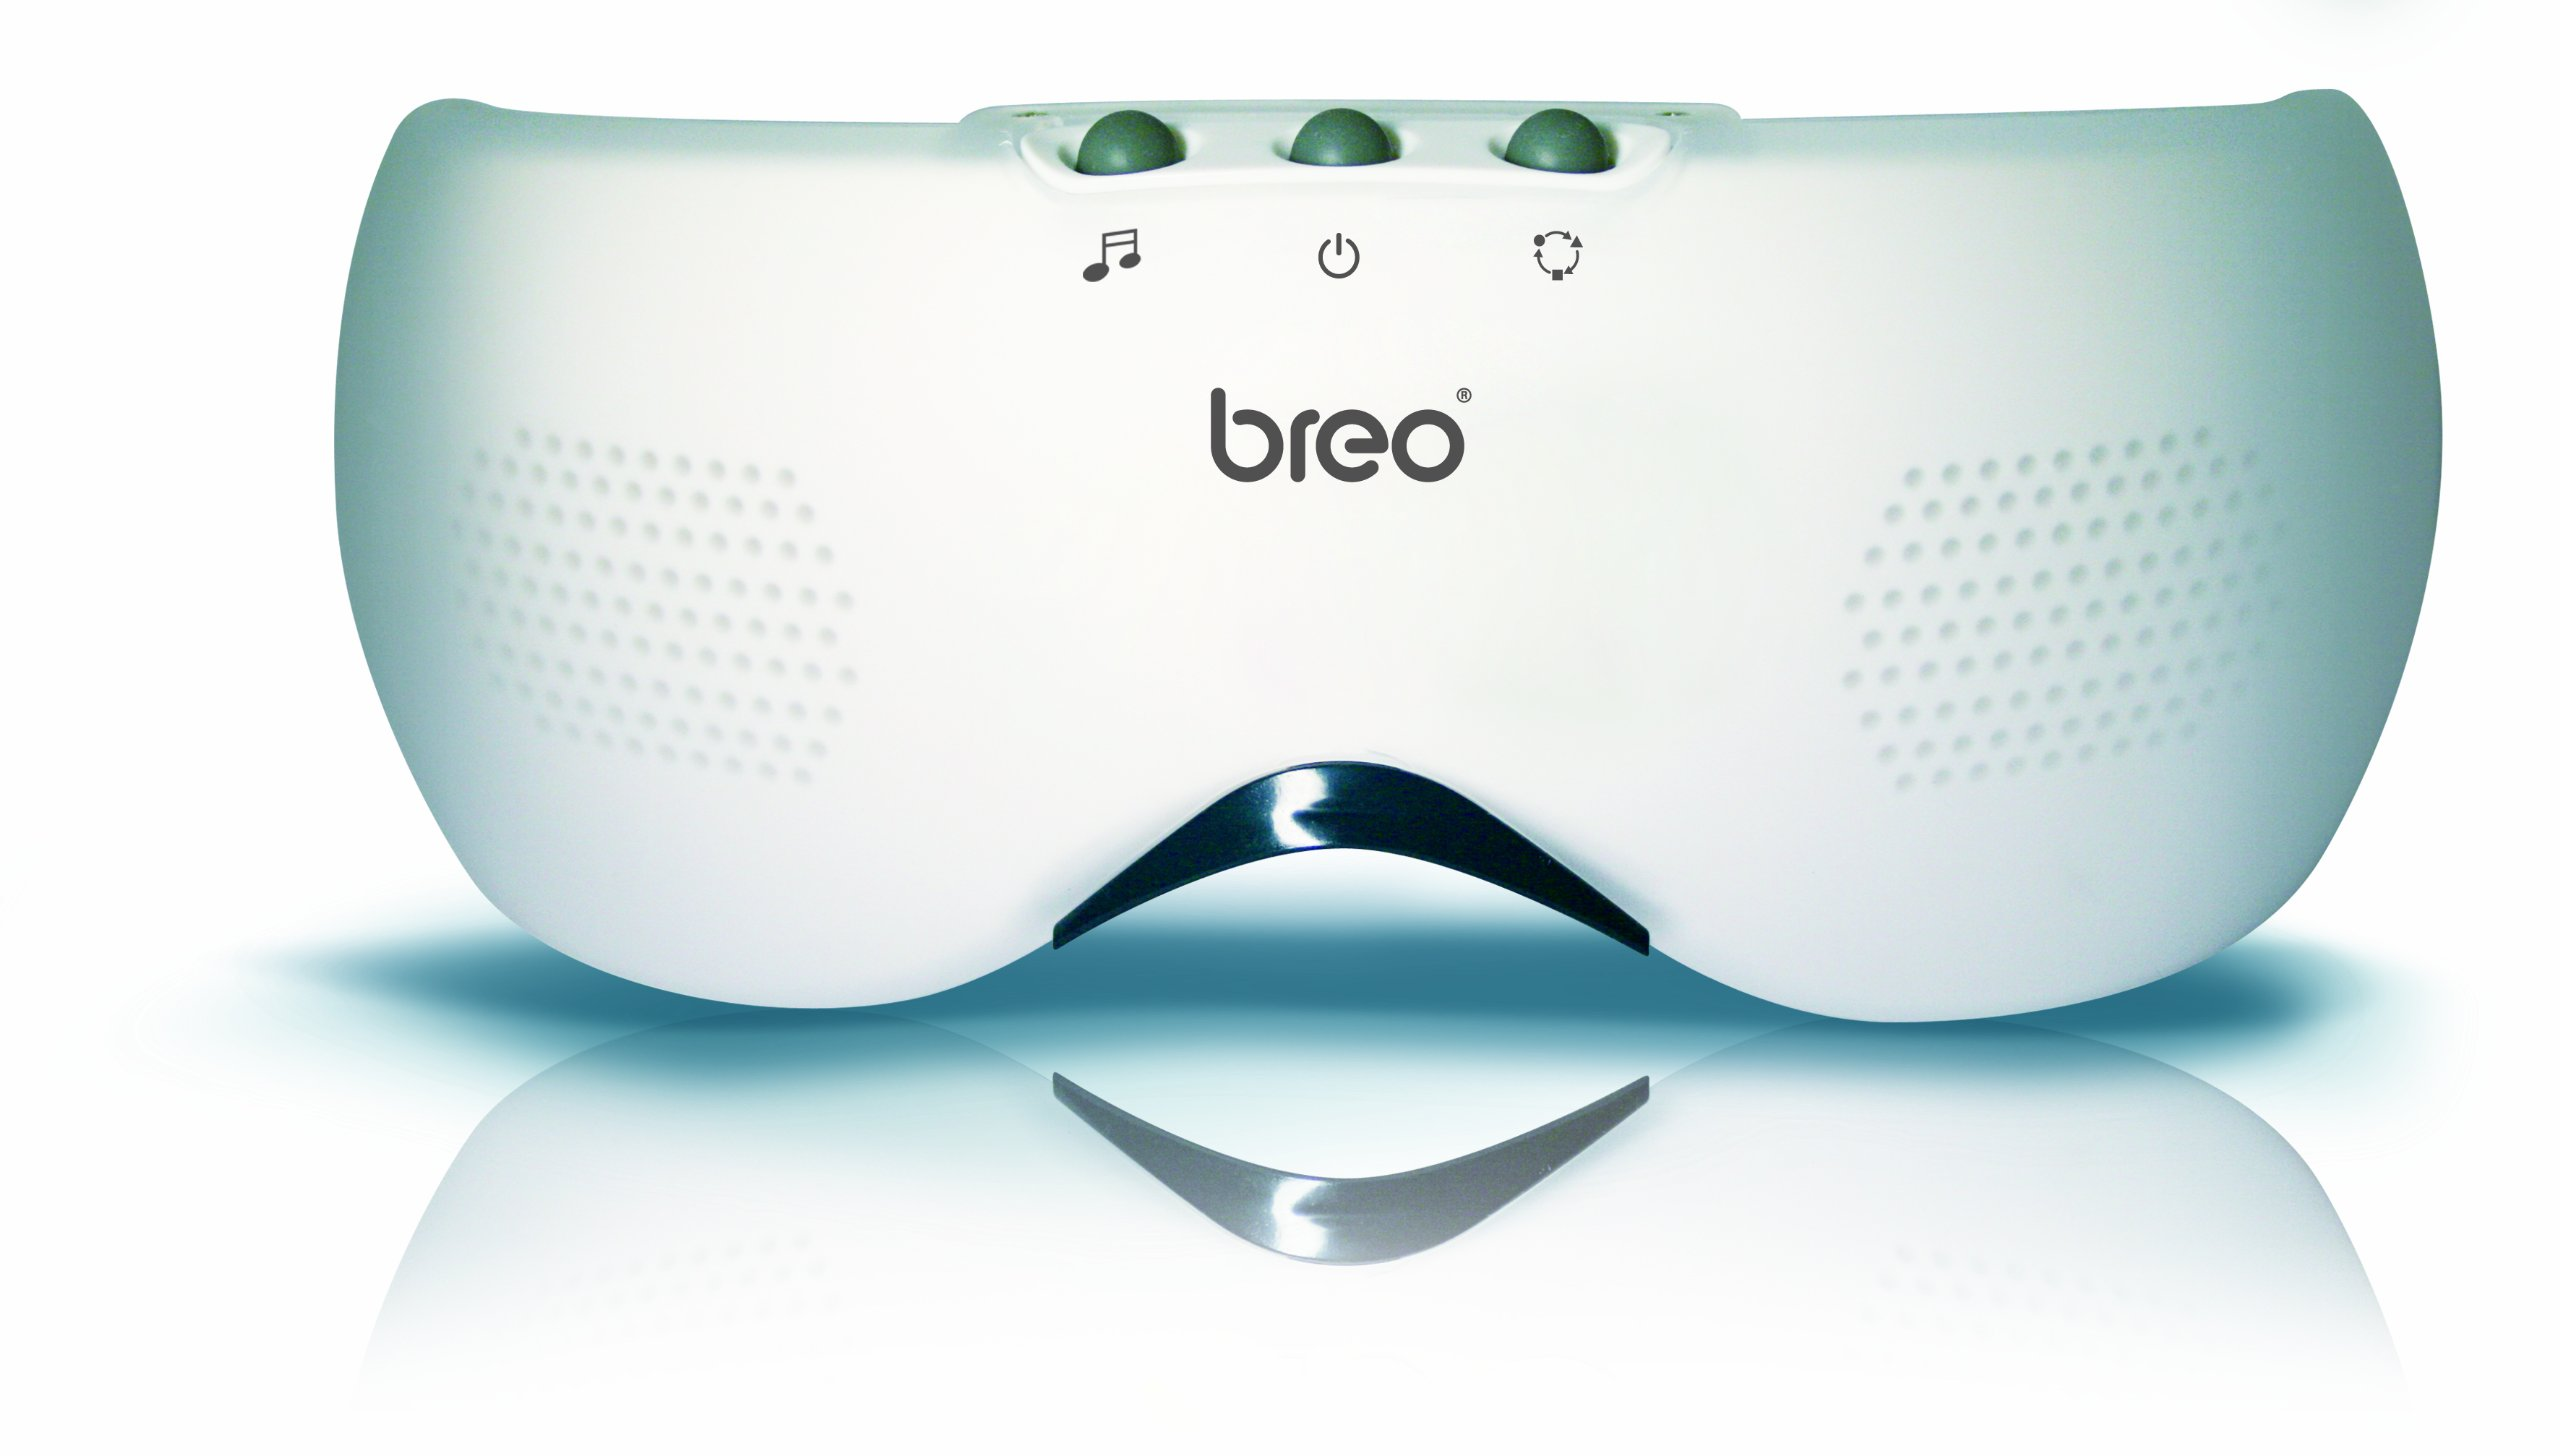 Breo iSee180 Eye Massager by Breo